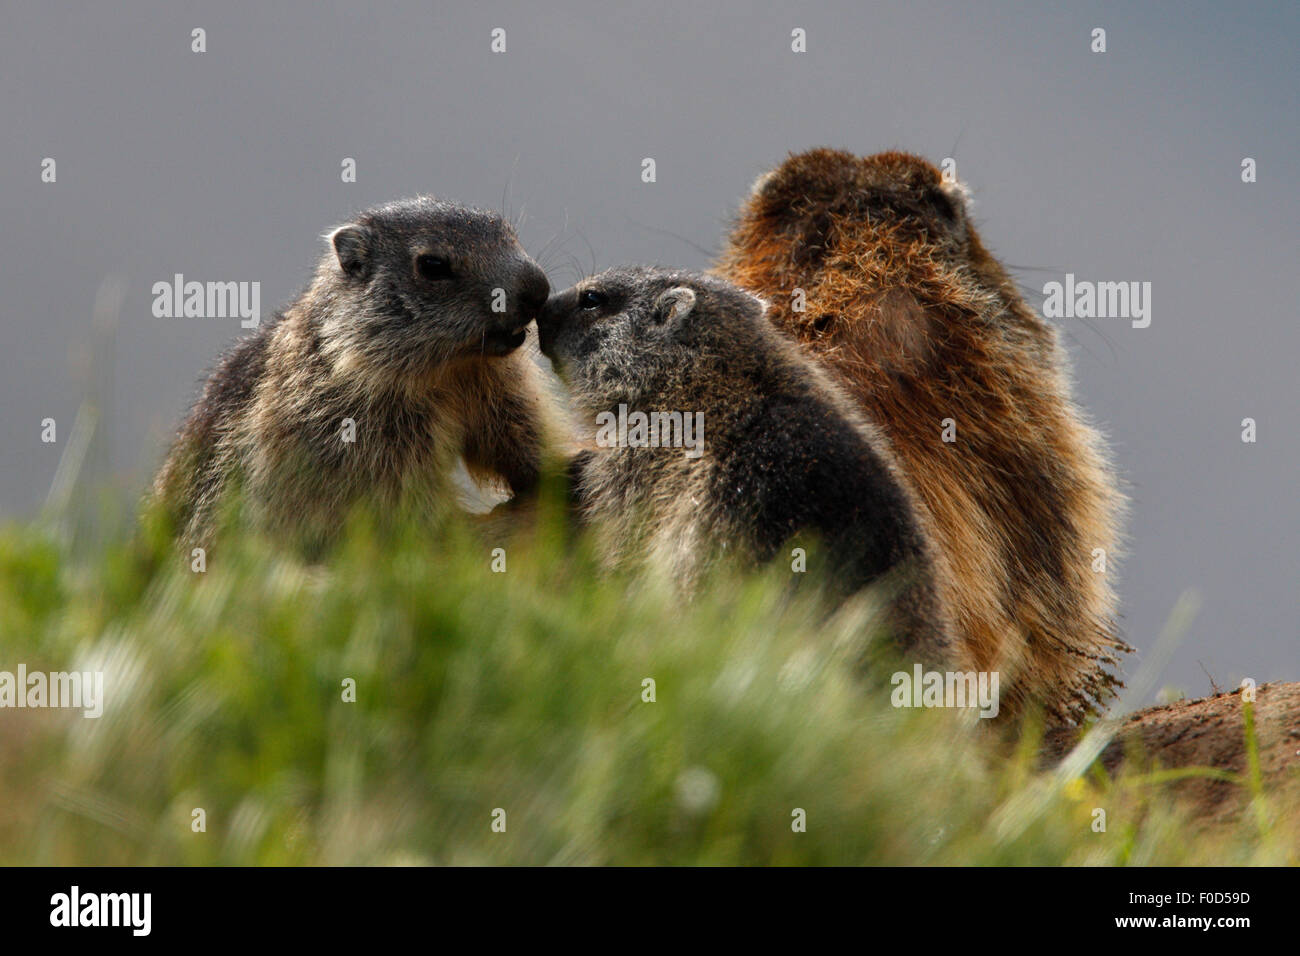 Alpine marmots (Marmota marmota) adult with young, Hohe Tauern National Park, Austria, July 2008 - Stock Image